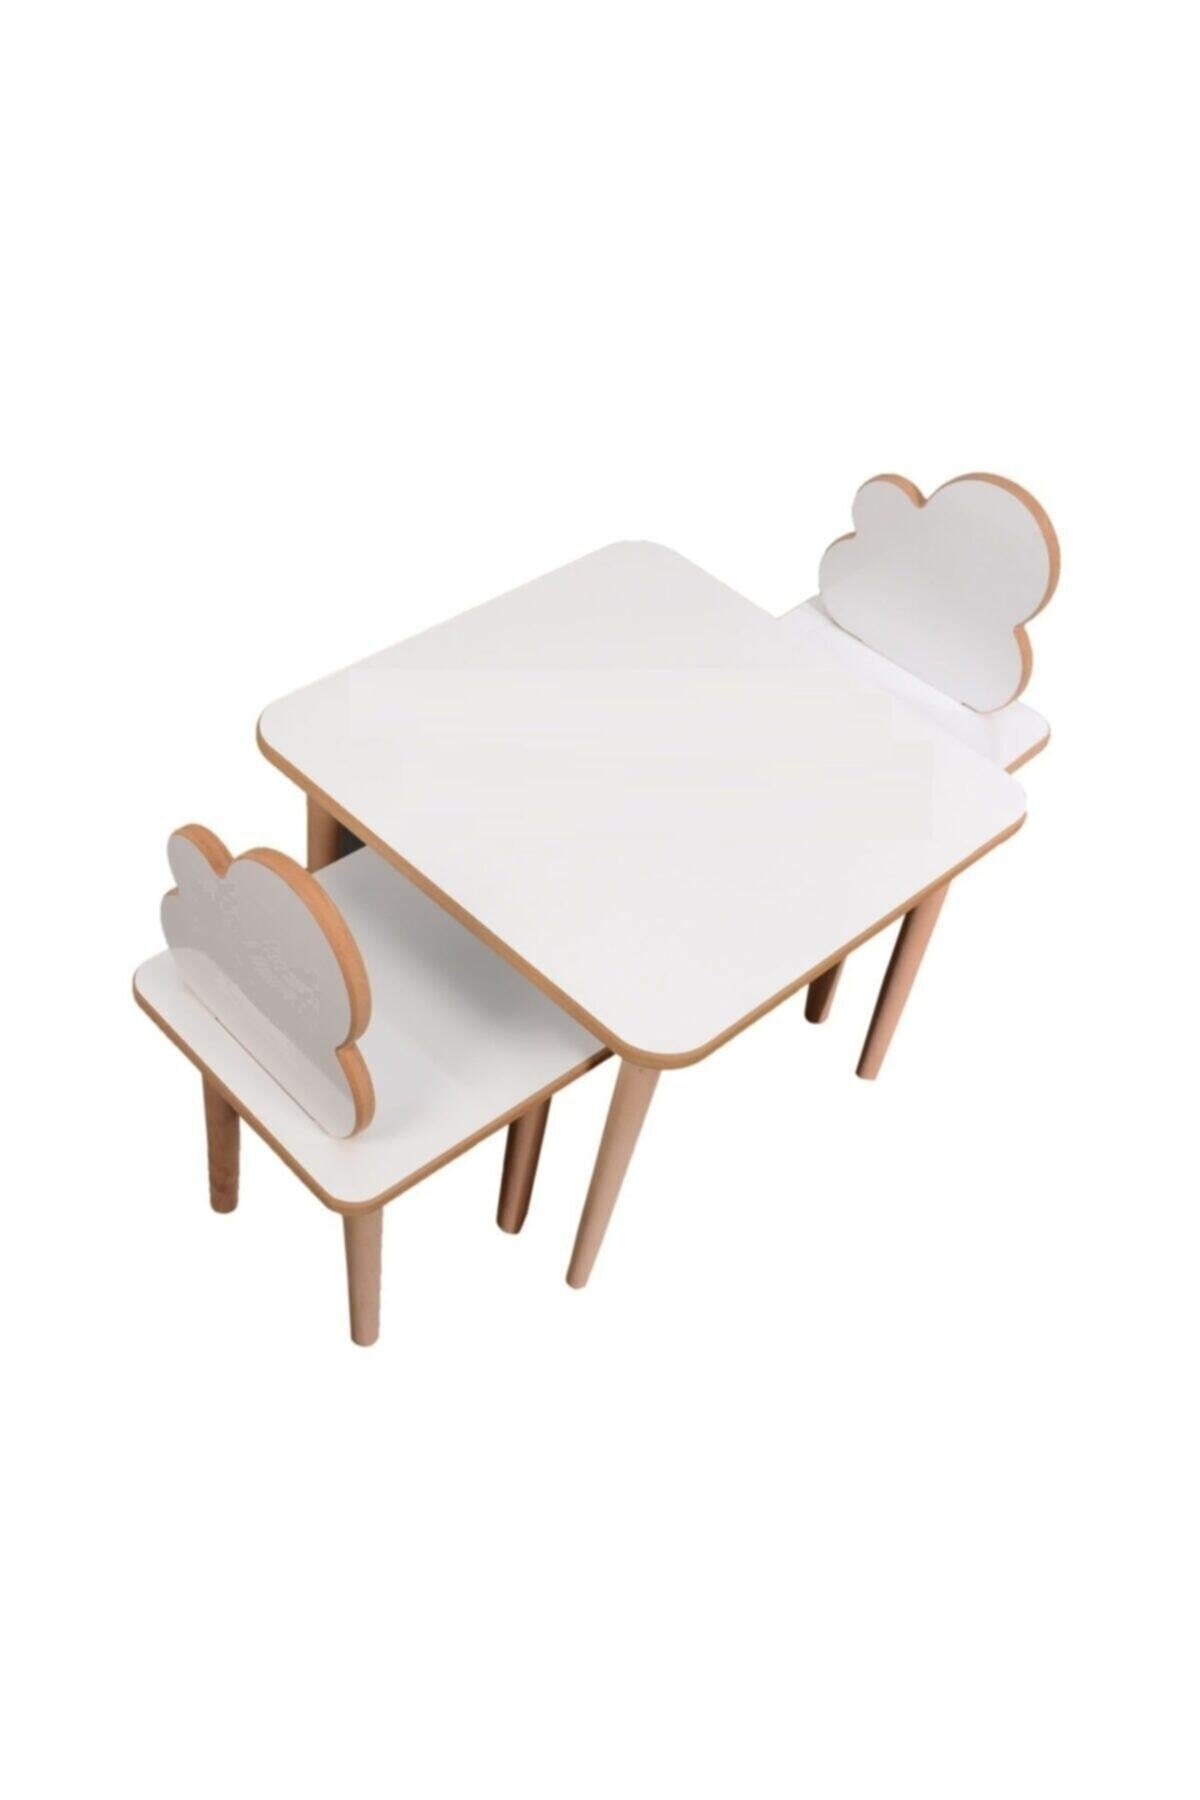 HELMI - Table enfant